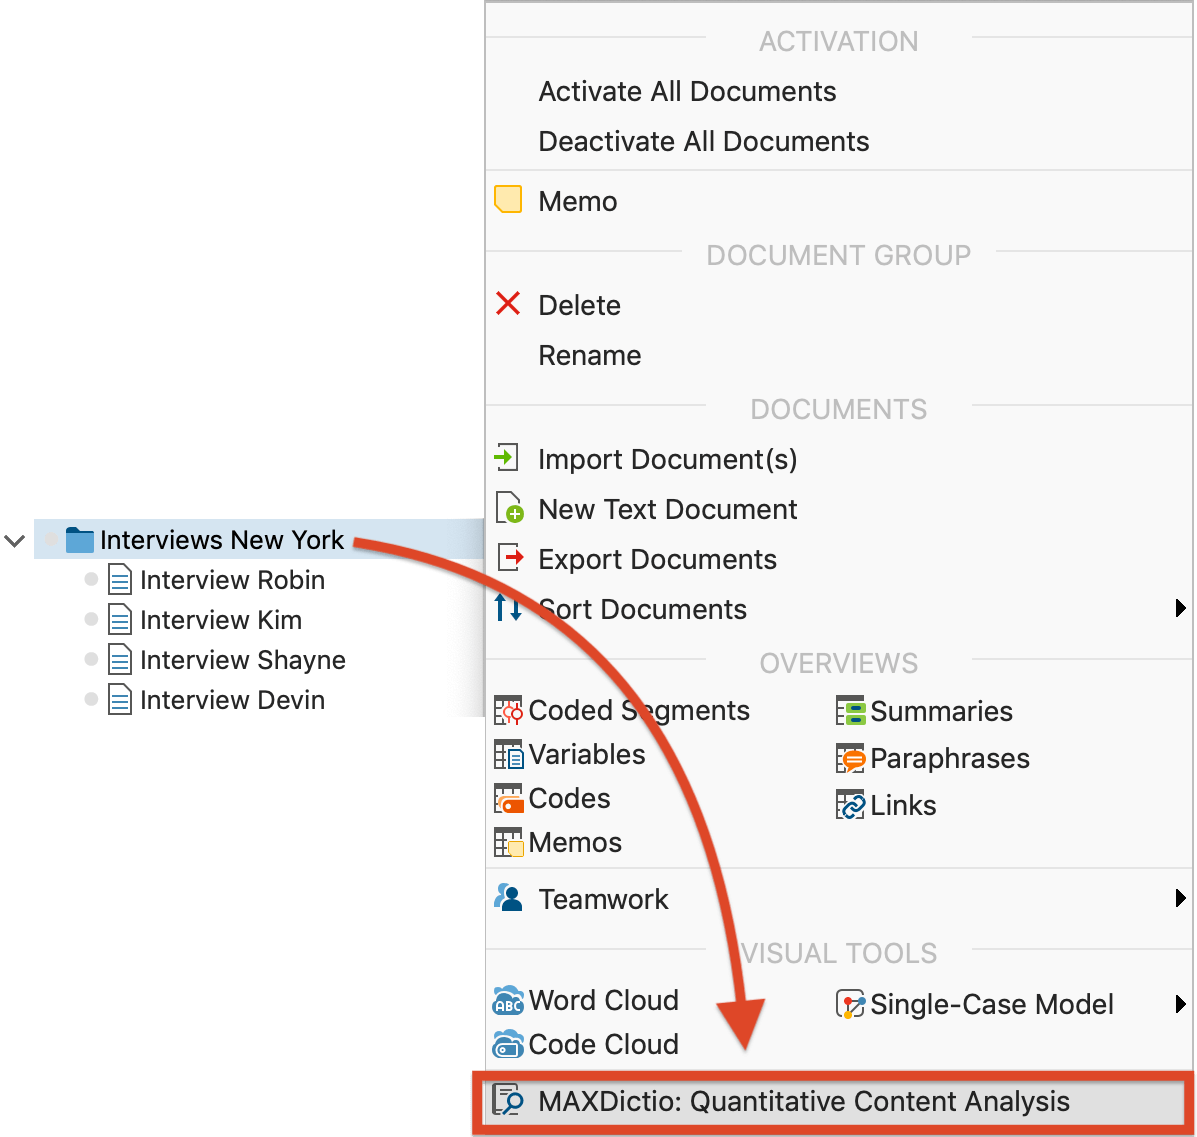 """Opening the function """"MAXDictio: Quantitative Content Anaylsis"""" via right-clicking on a document group"""